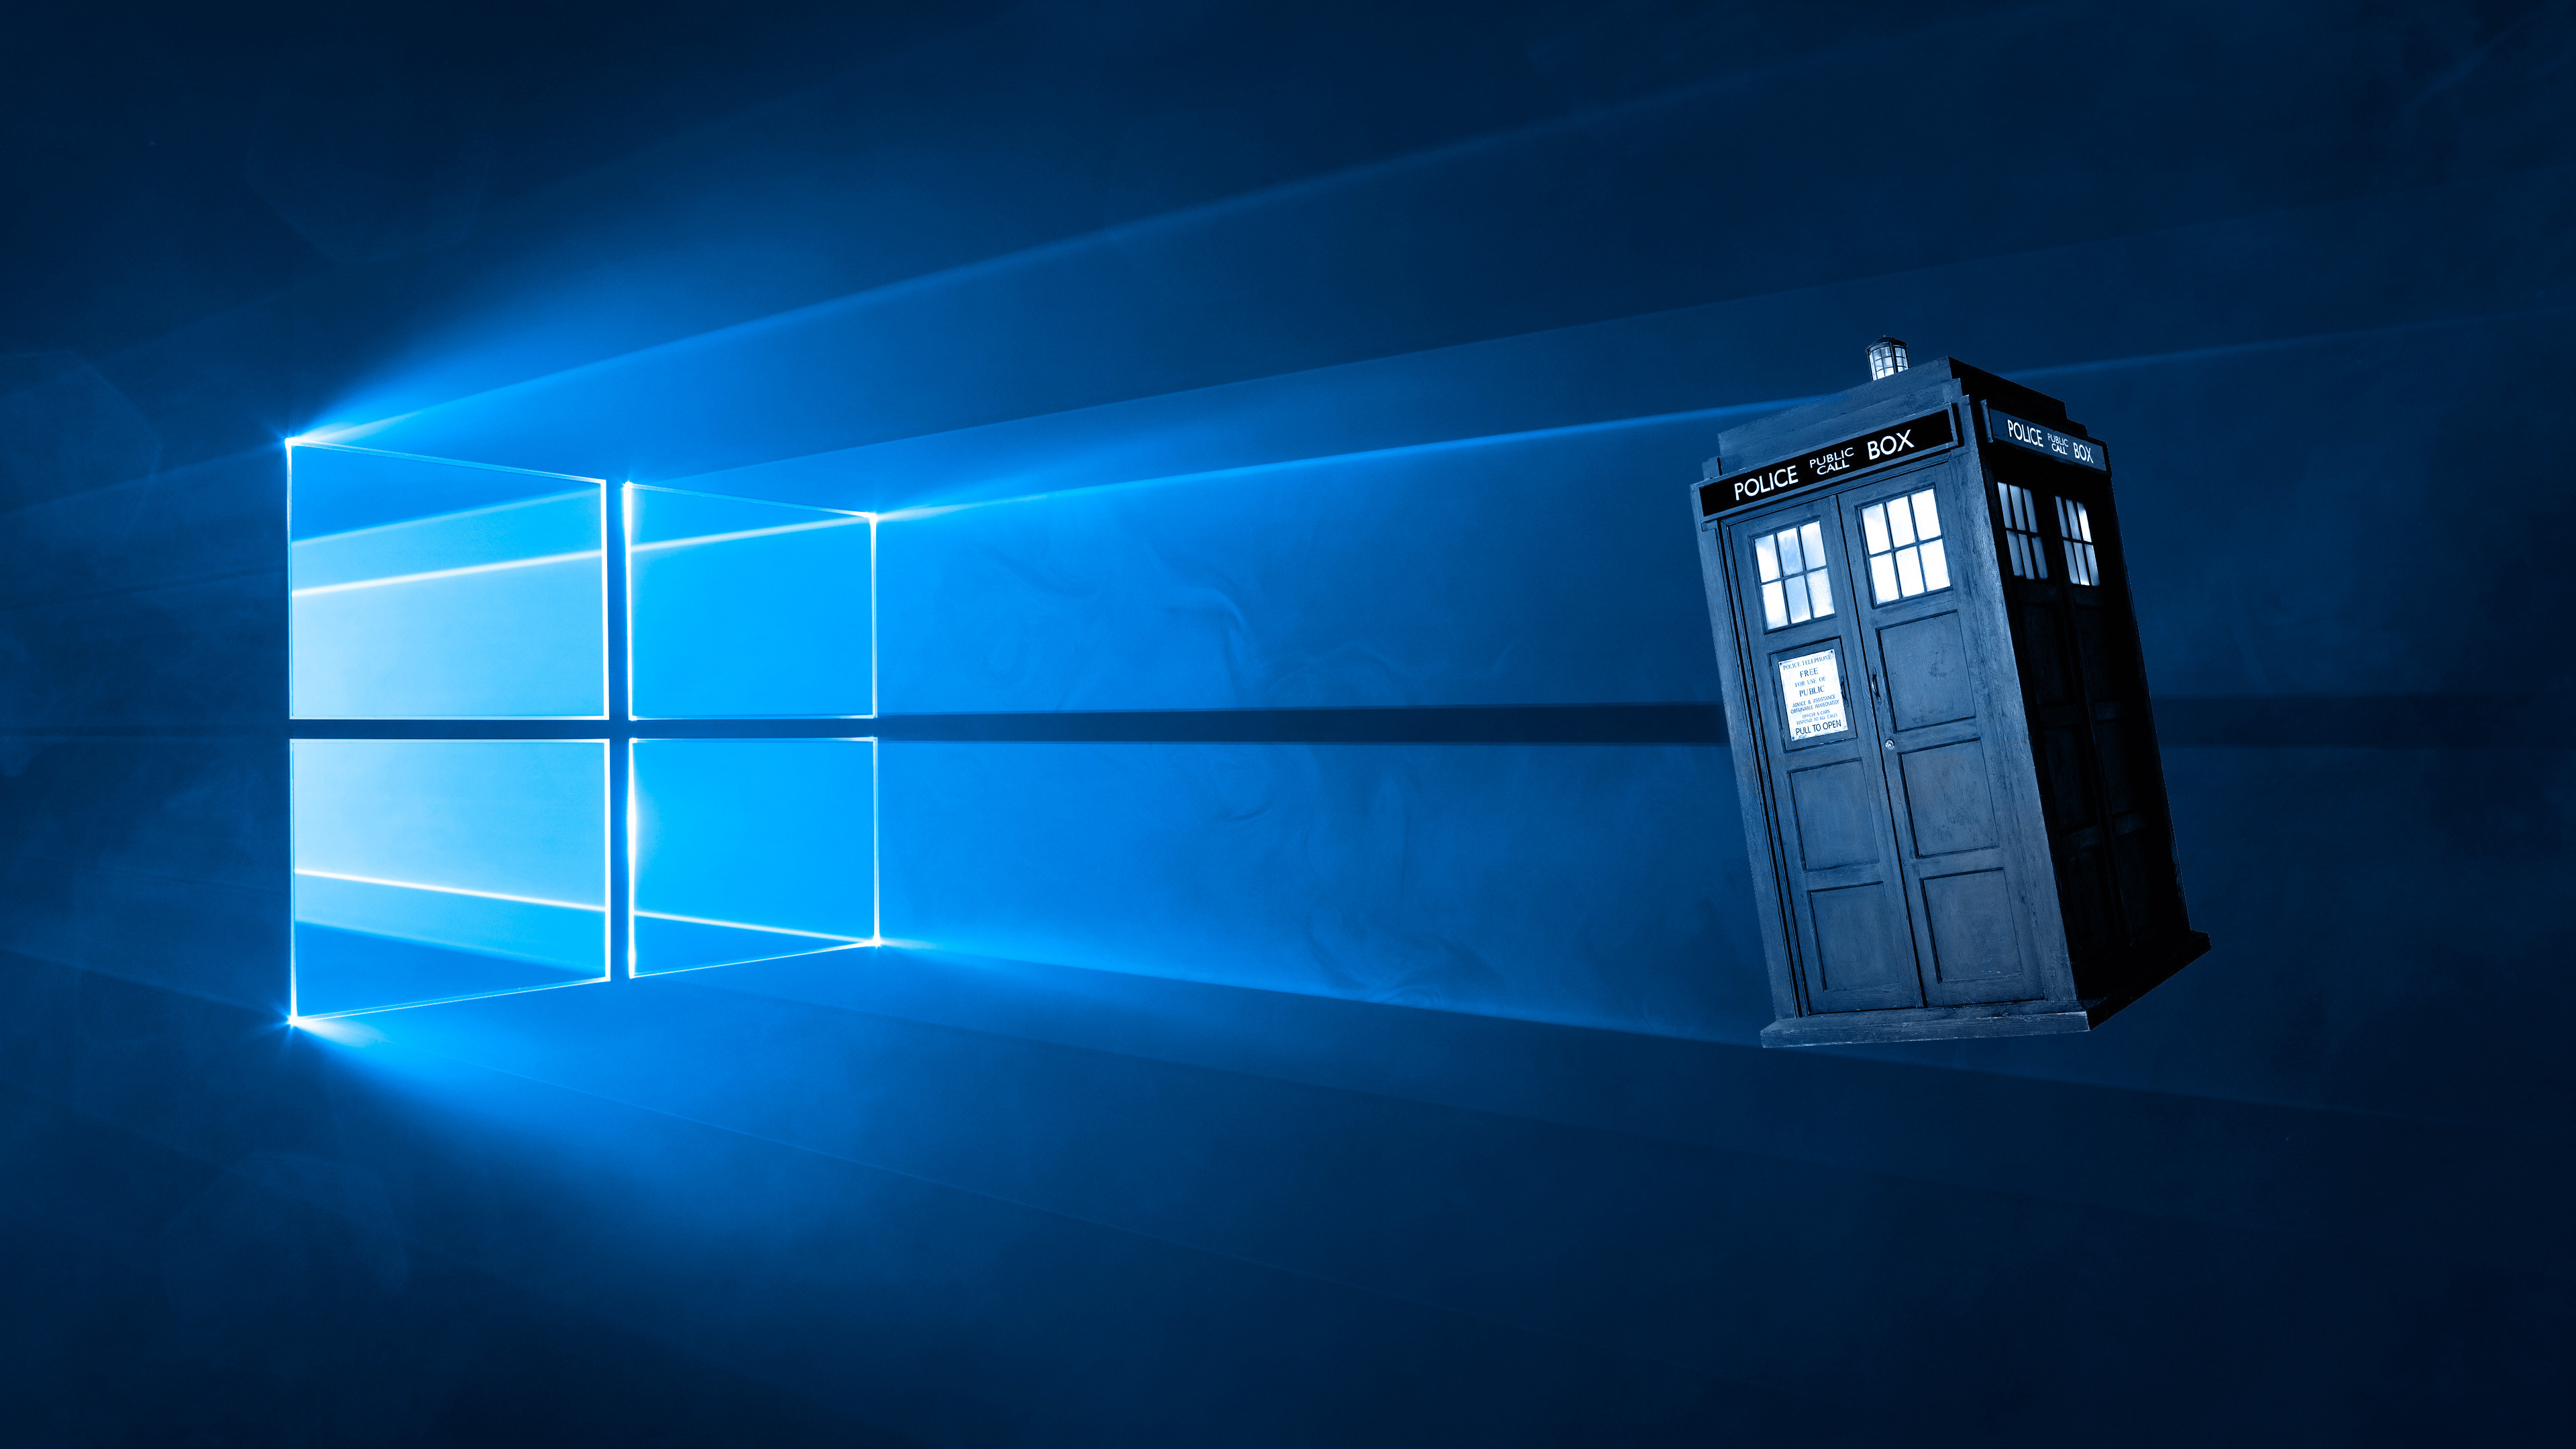 tardis wallpaper for windows 69 images